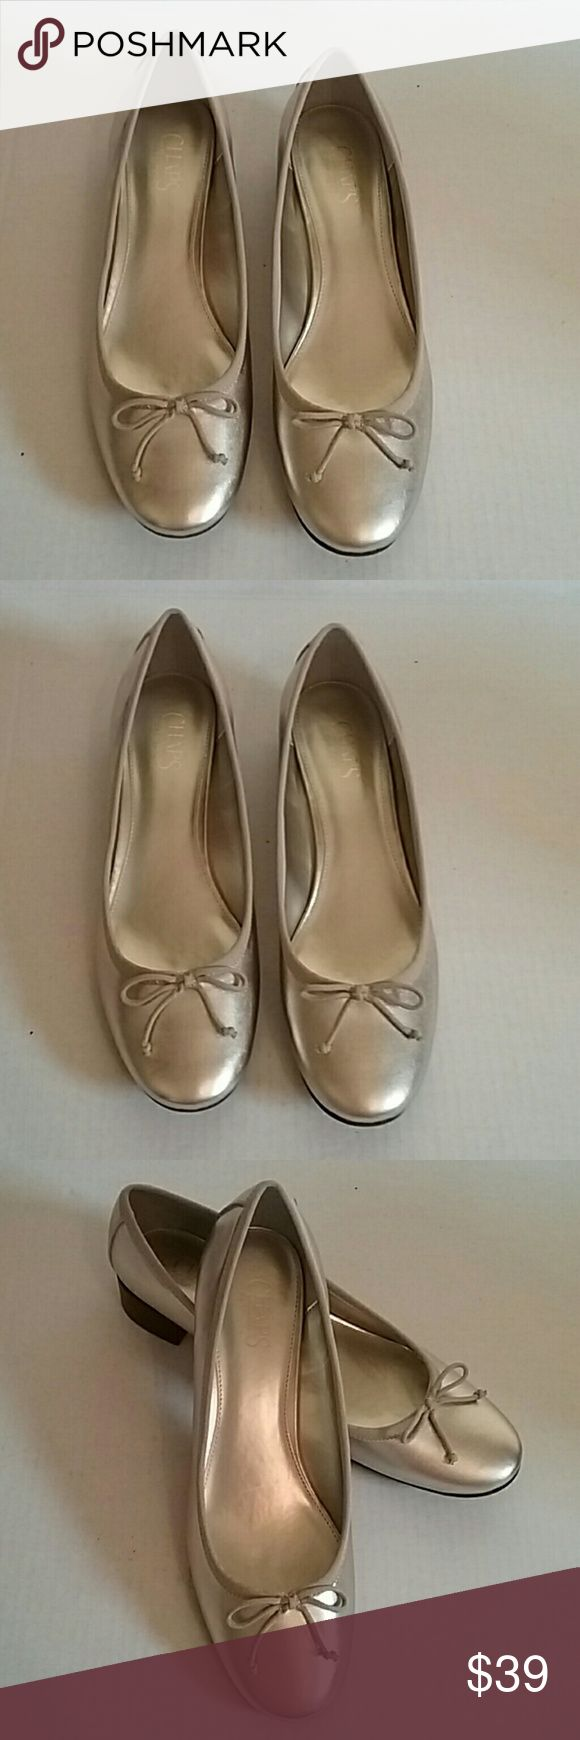 New Gold Chaps Ralph Lauren Sz 11B Ballet Flats Is a pair of new gold ballet flats.  They are size 11B. Chaps Shoes Flats & Loafers